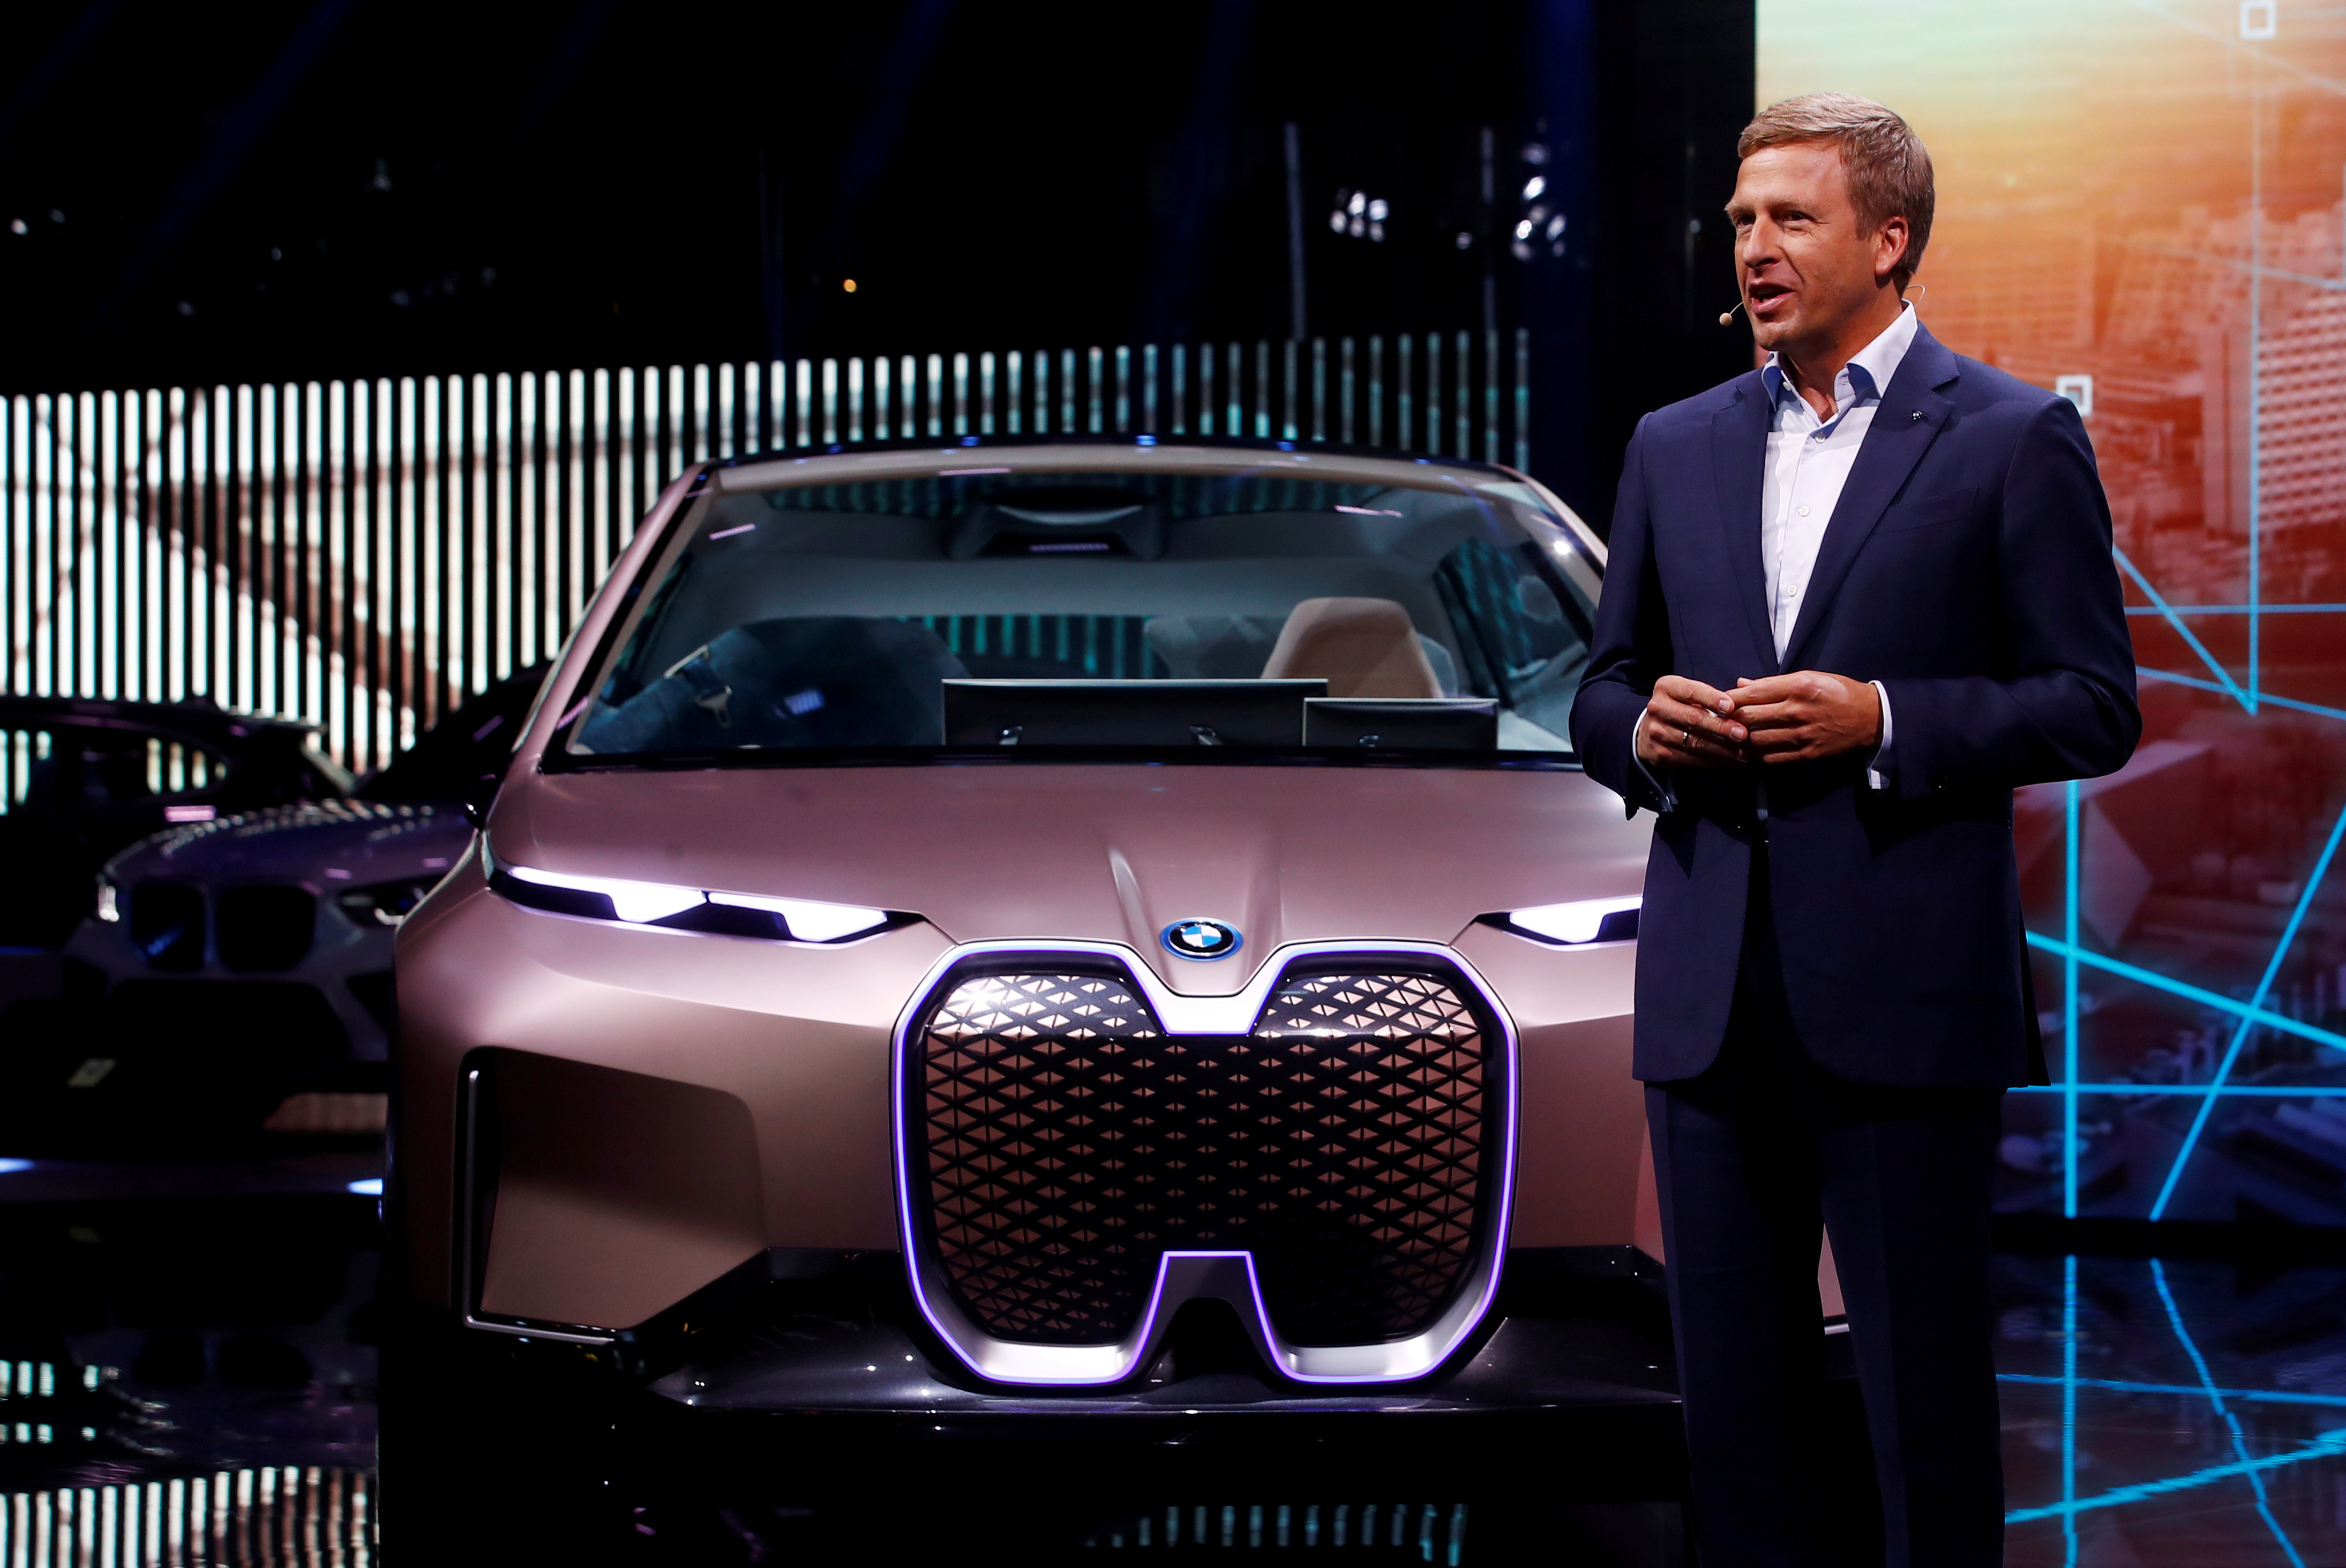 BMW German luxury carmaker new CEO Oliver Zipse, speaks at the 2019 Frankfurt Motor Show (IAA) in Frankfurt, Germany. September 10, 2019. REUTERS/Wolfgang Rattay/File Photo